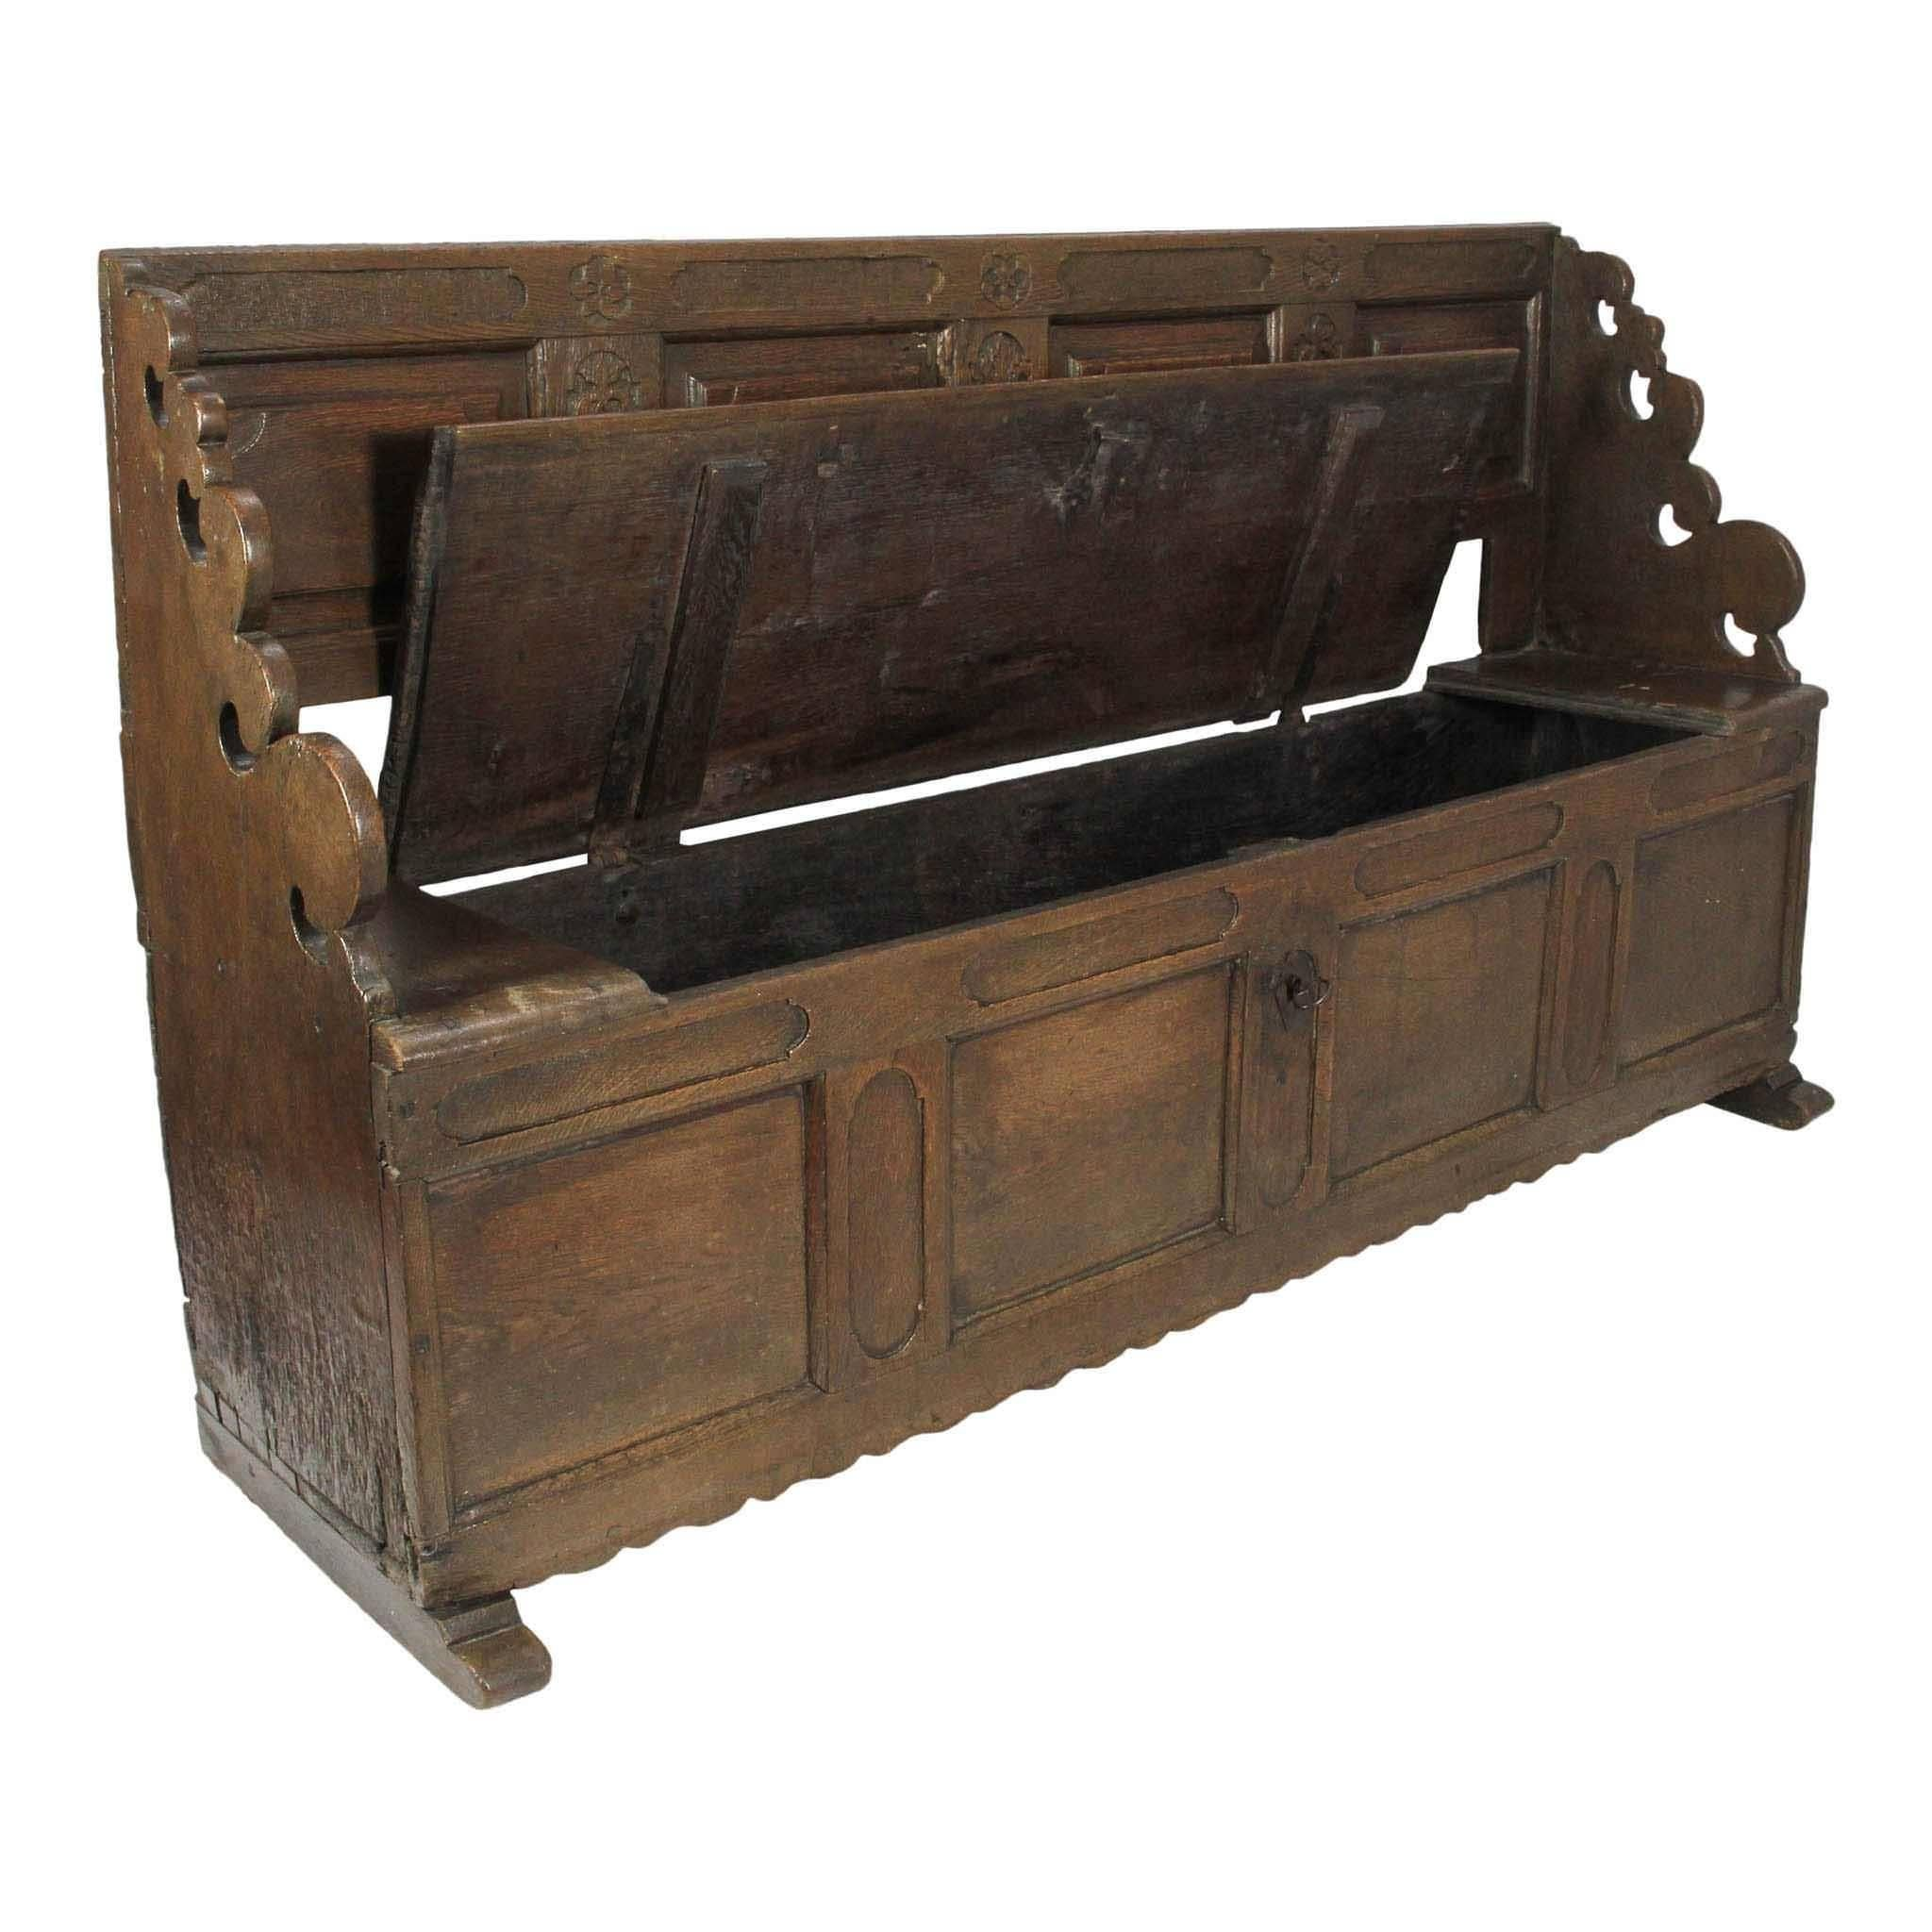 Early 19th Century Danish Beechwood Bench With Storage For Sale At 1stdibs